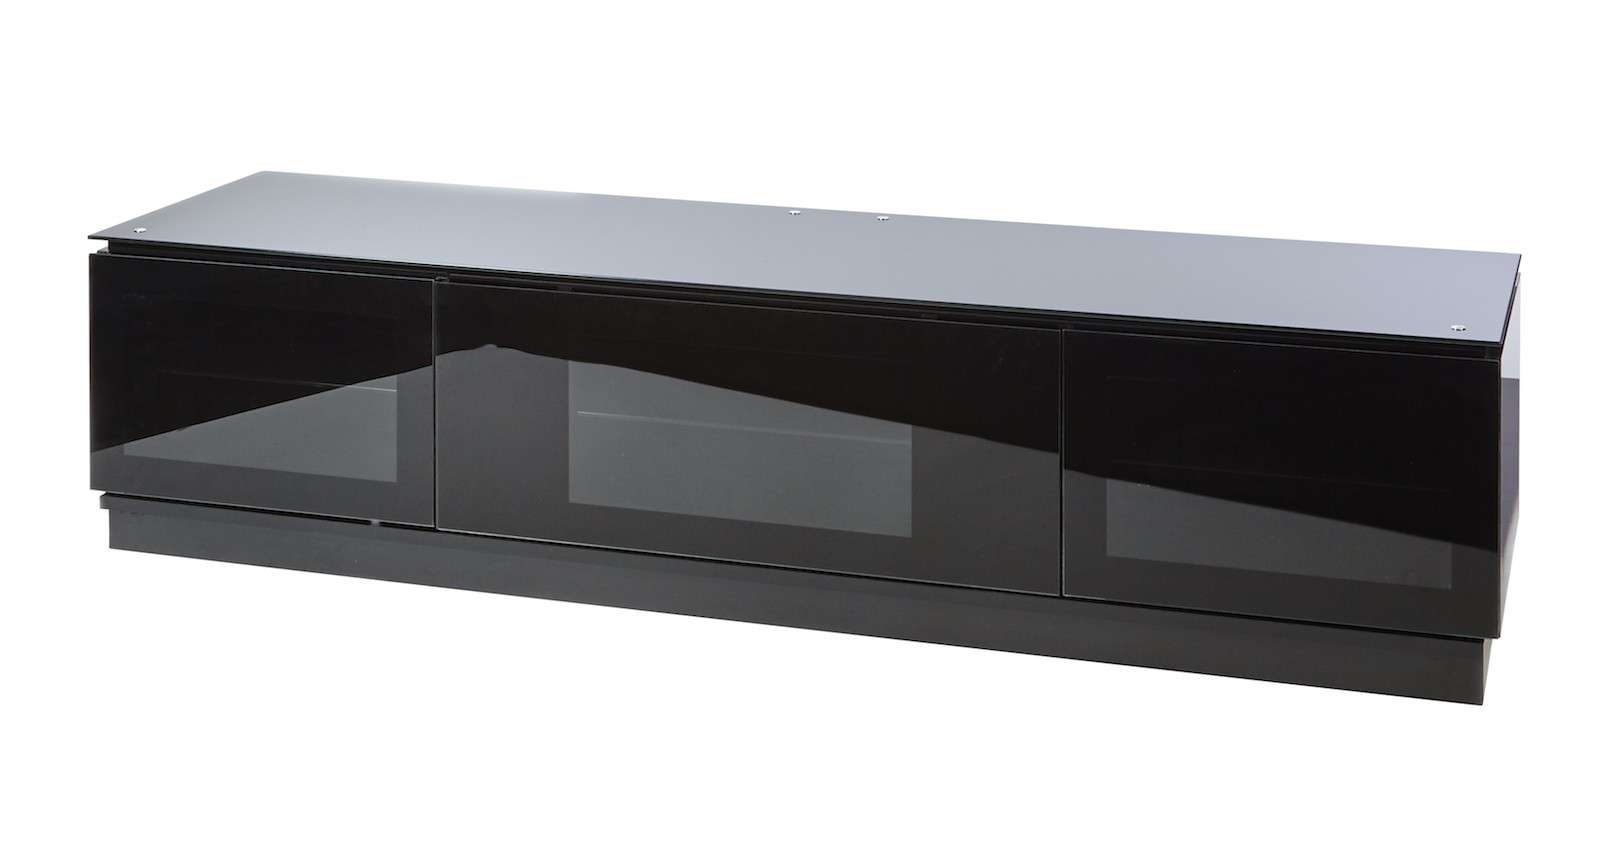 Black Gloss Tv Unit Up To 80 Inch Flat Screen Tv | Mmt D1800 Inside 80 Inch Tv Stands (View 7 of 15)